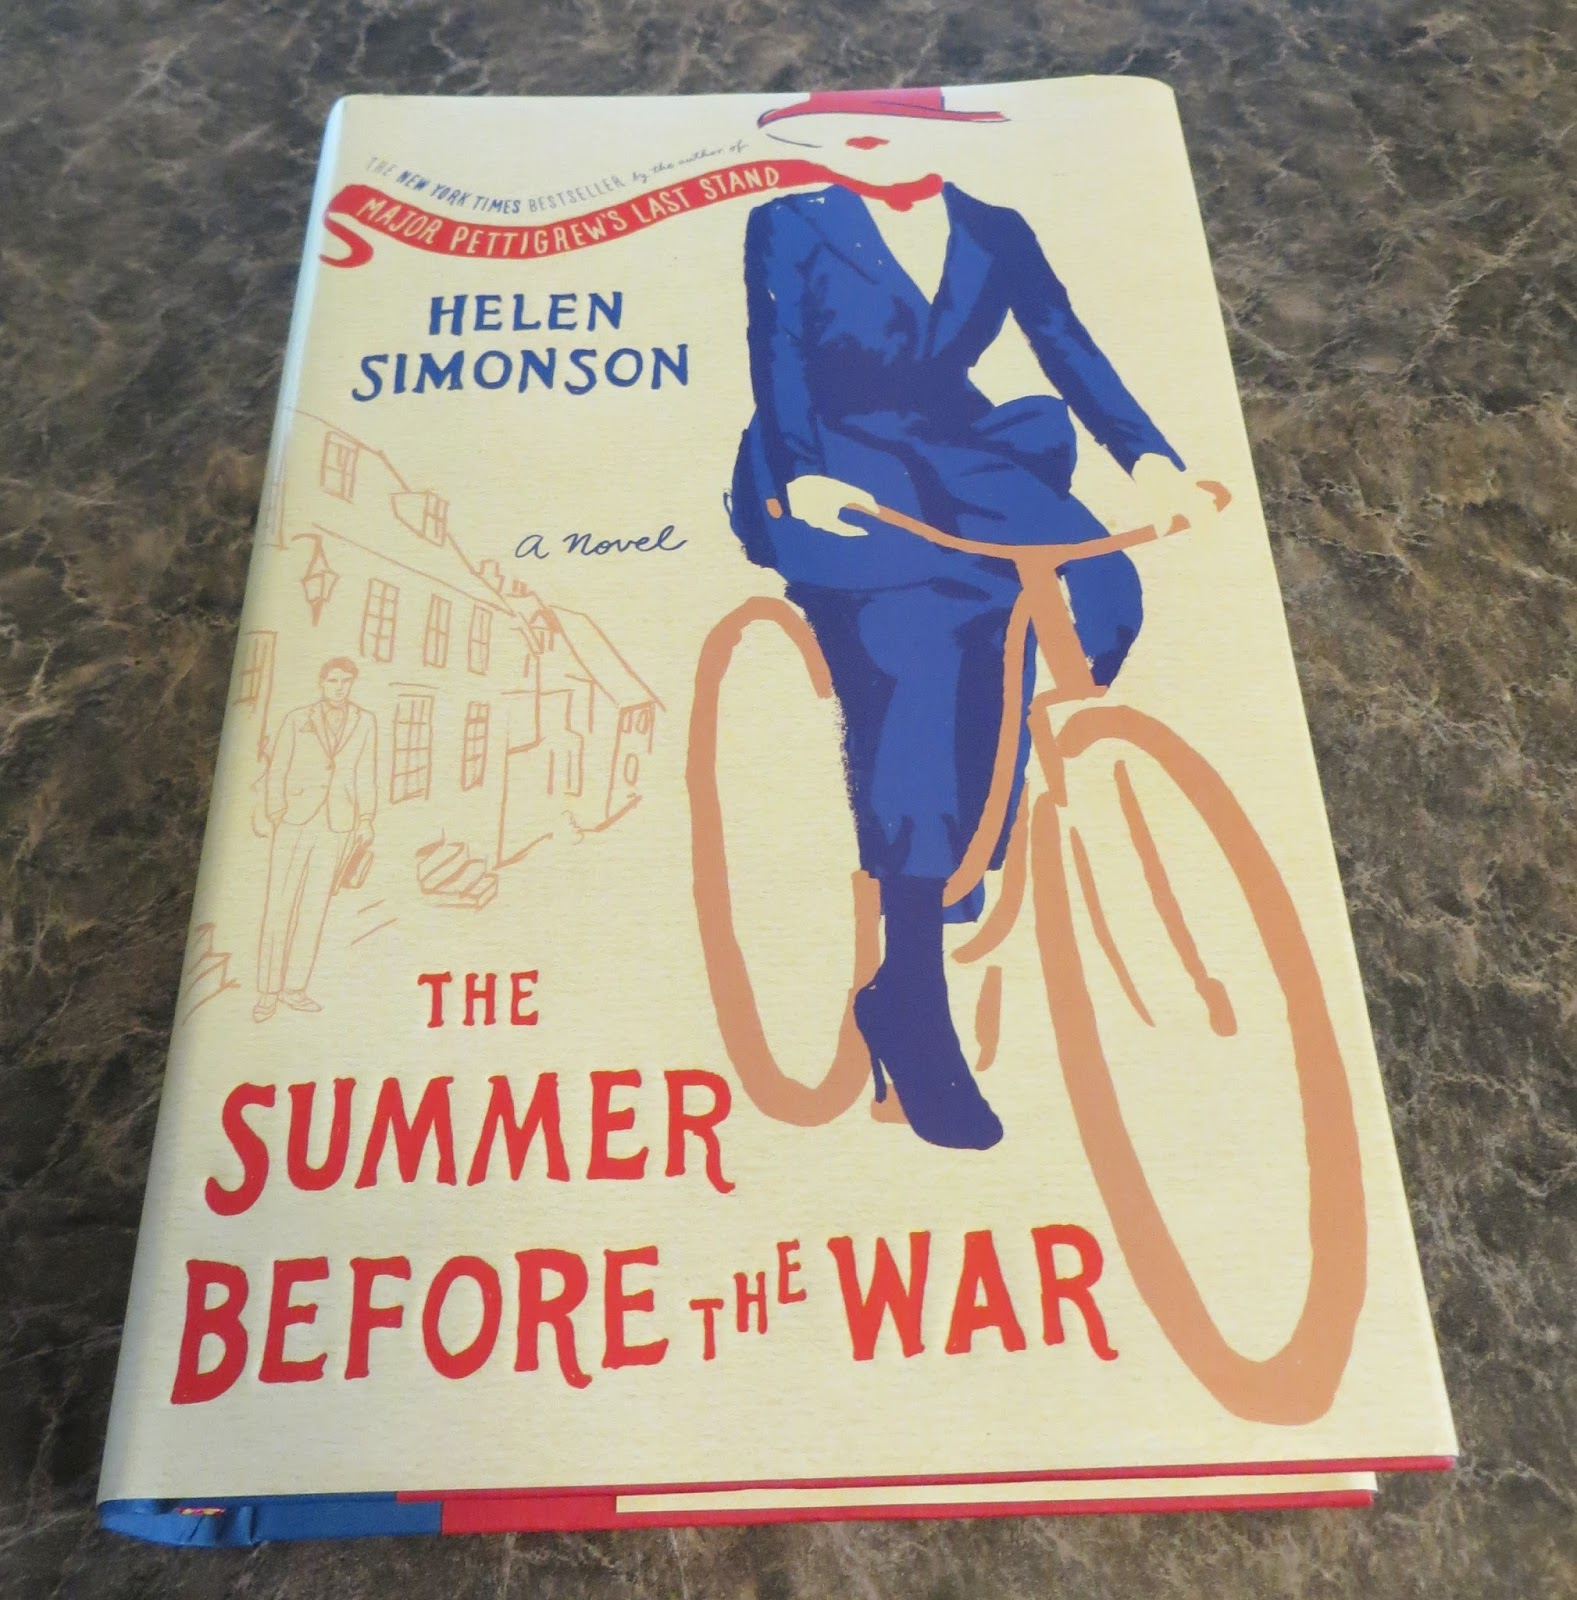 It is 1914--the idyllic summer before the war. Beatrice Nash arrives to  teach Latin. She finds colorful characters, resistance to a female teacher,  ...